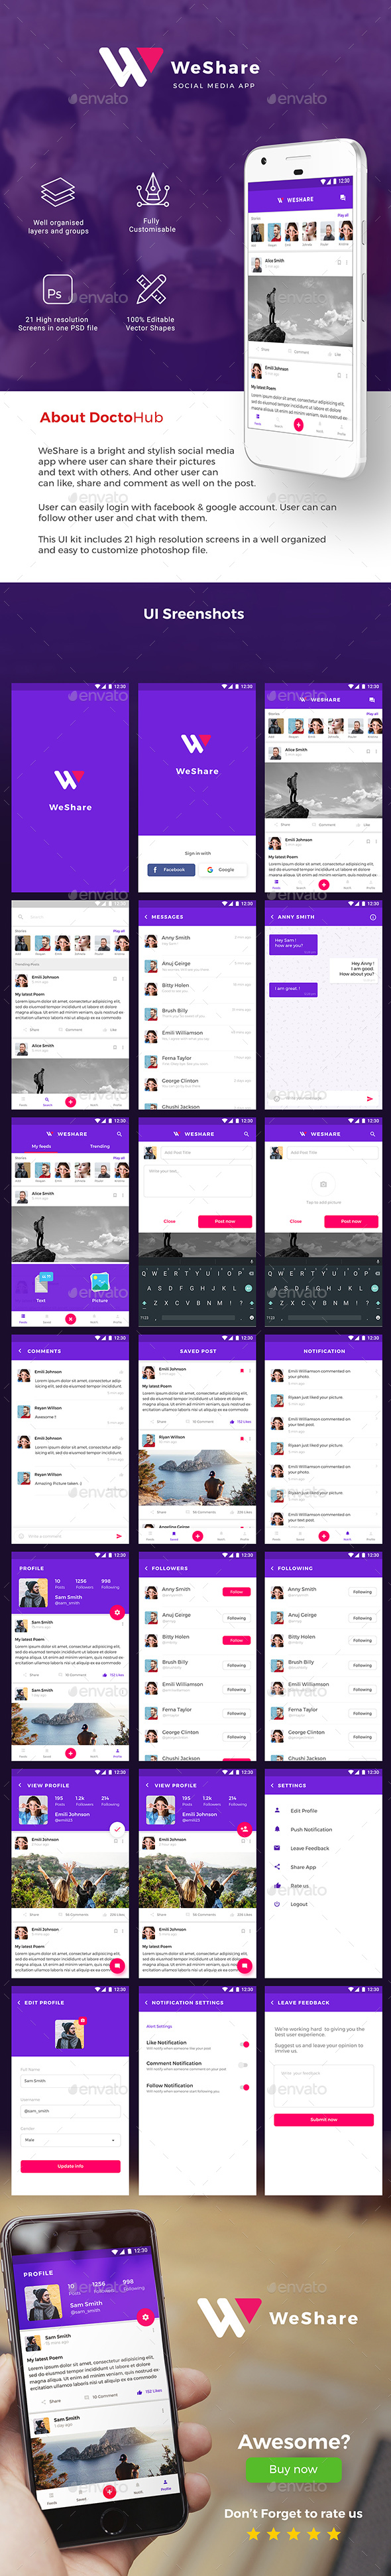 Social Media App UI Kit for Andoird & iOS | WeShare - User Interfaces Web Elements